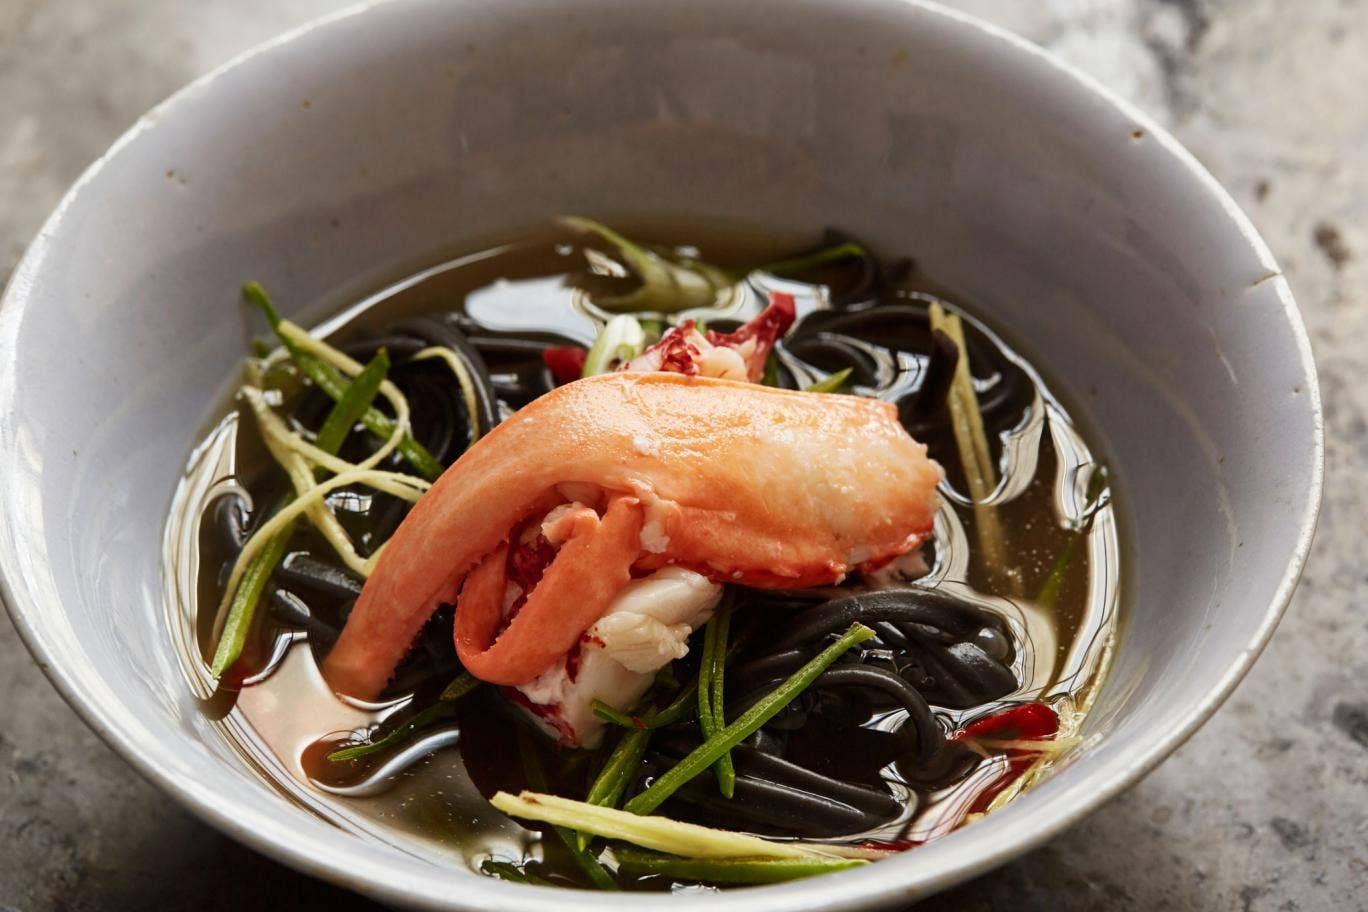 Turn lobster shells into a clear broth and serve with noodles